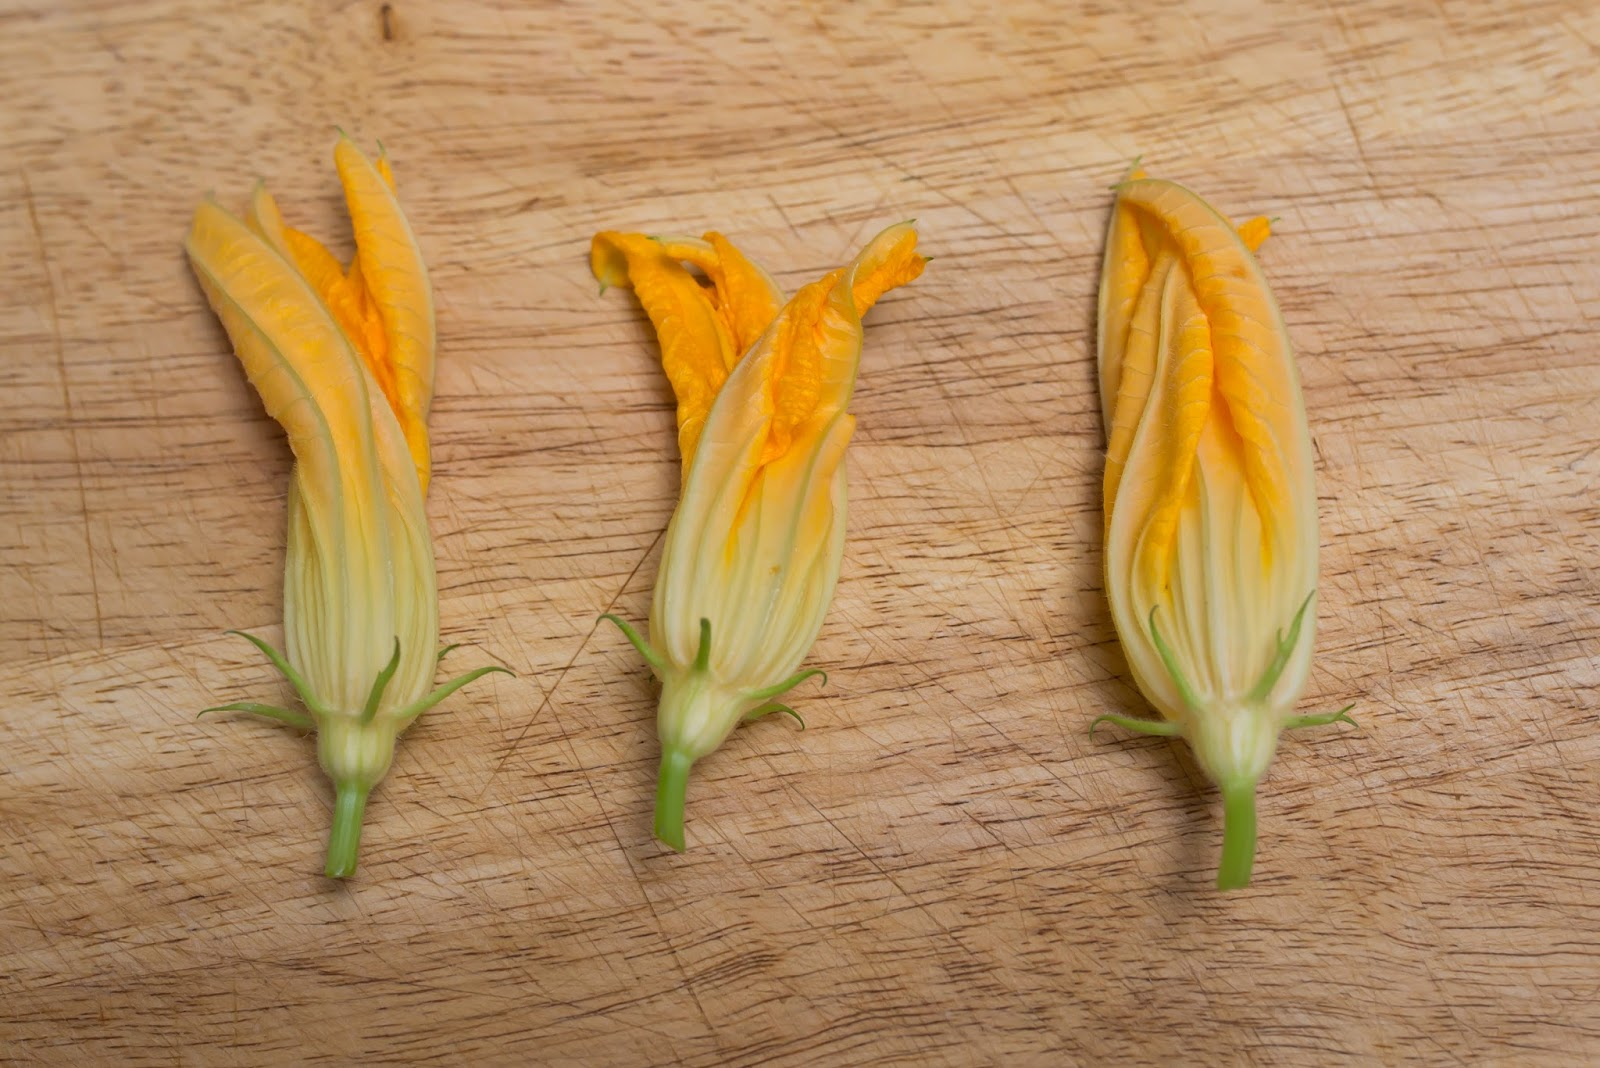 z is for zucchini blossoms stuffed with ricotta